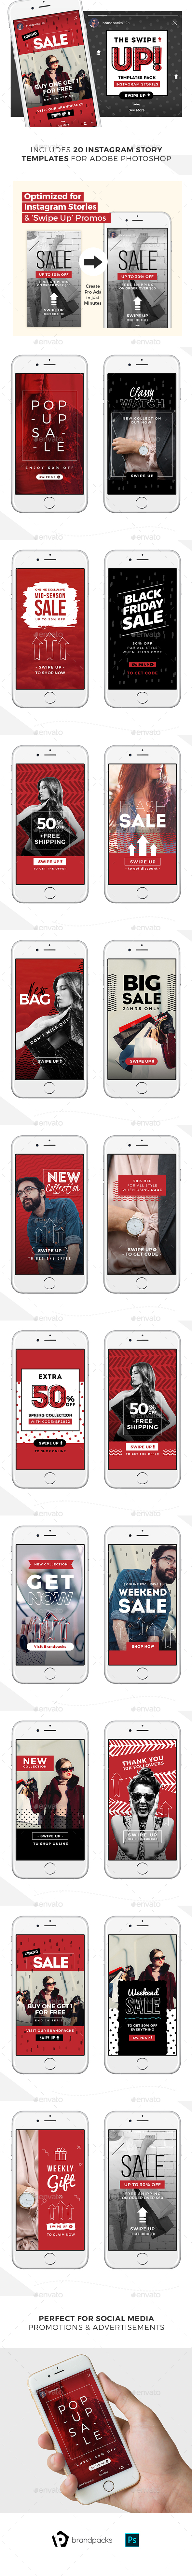 GraphicRiver Swipe Up Instagram Story Templates Pack 21077370